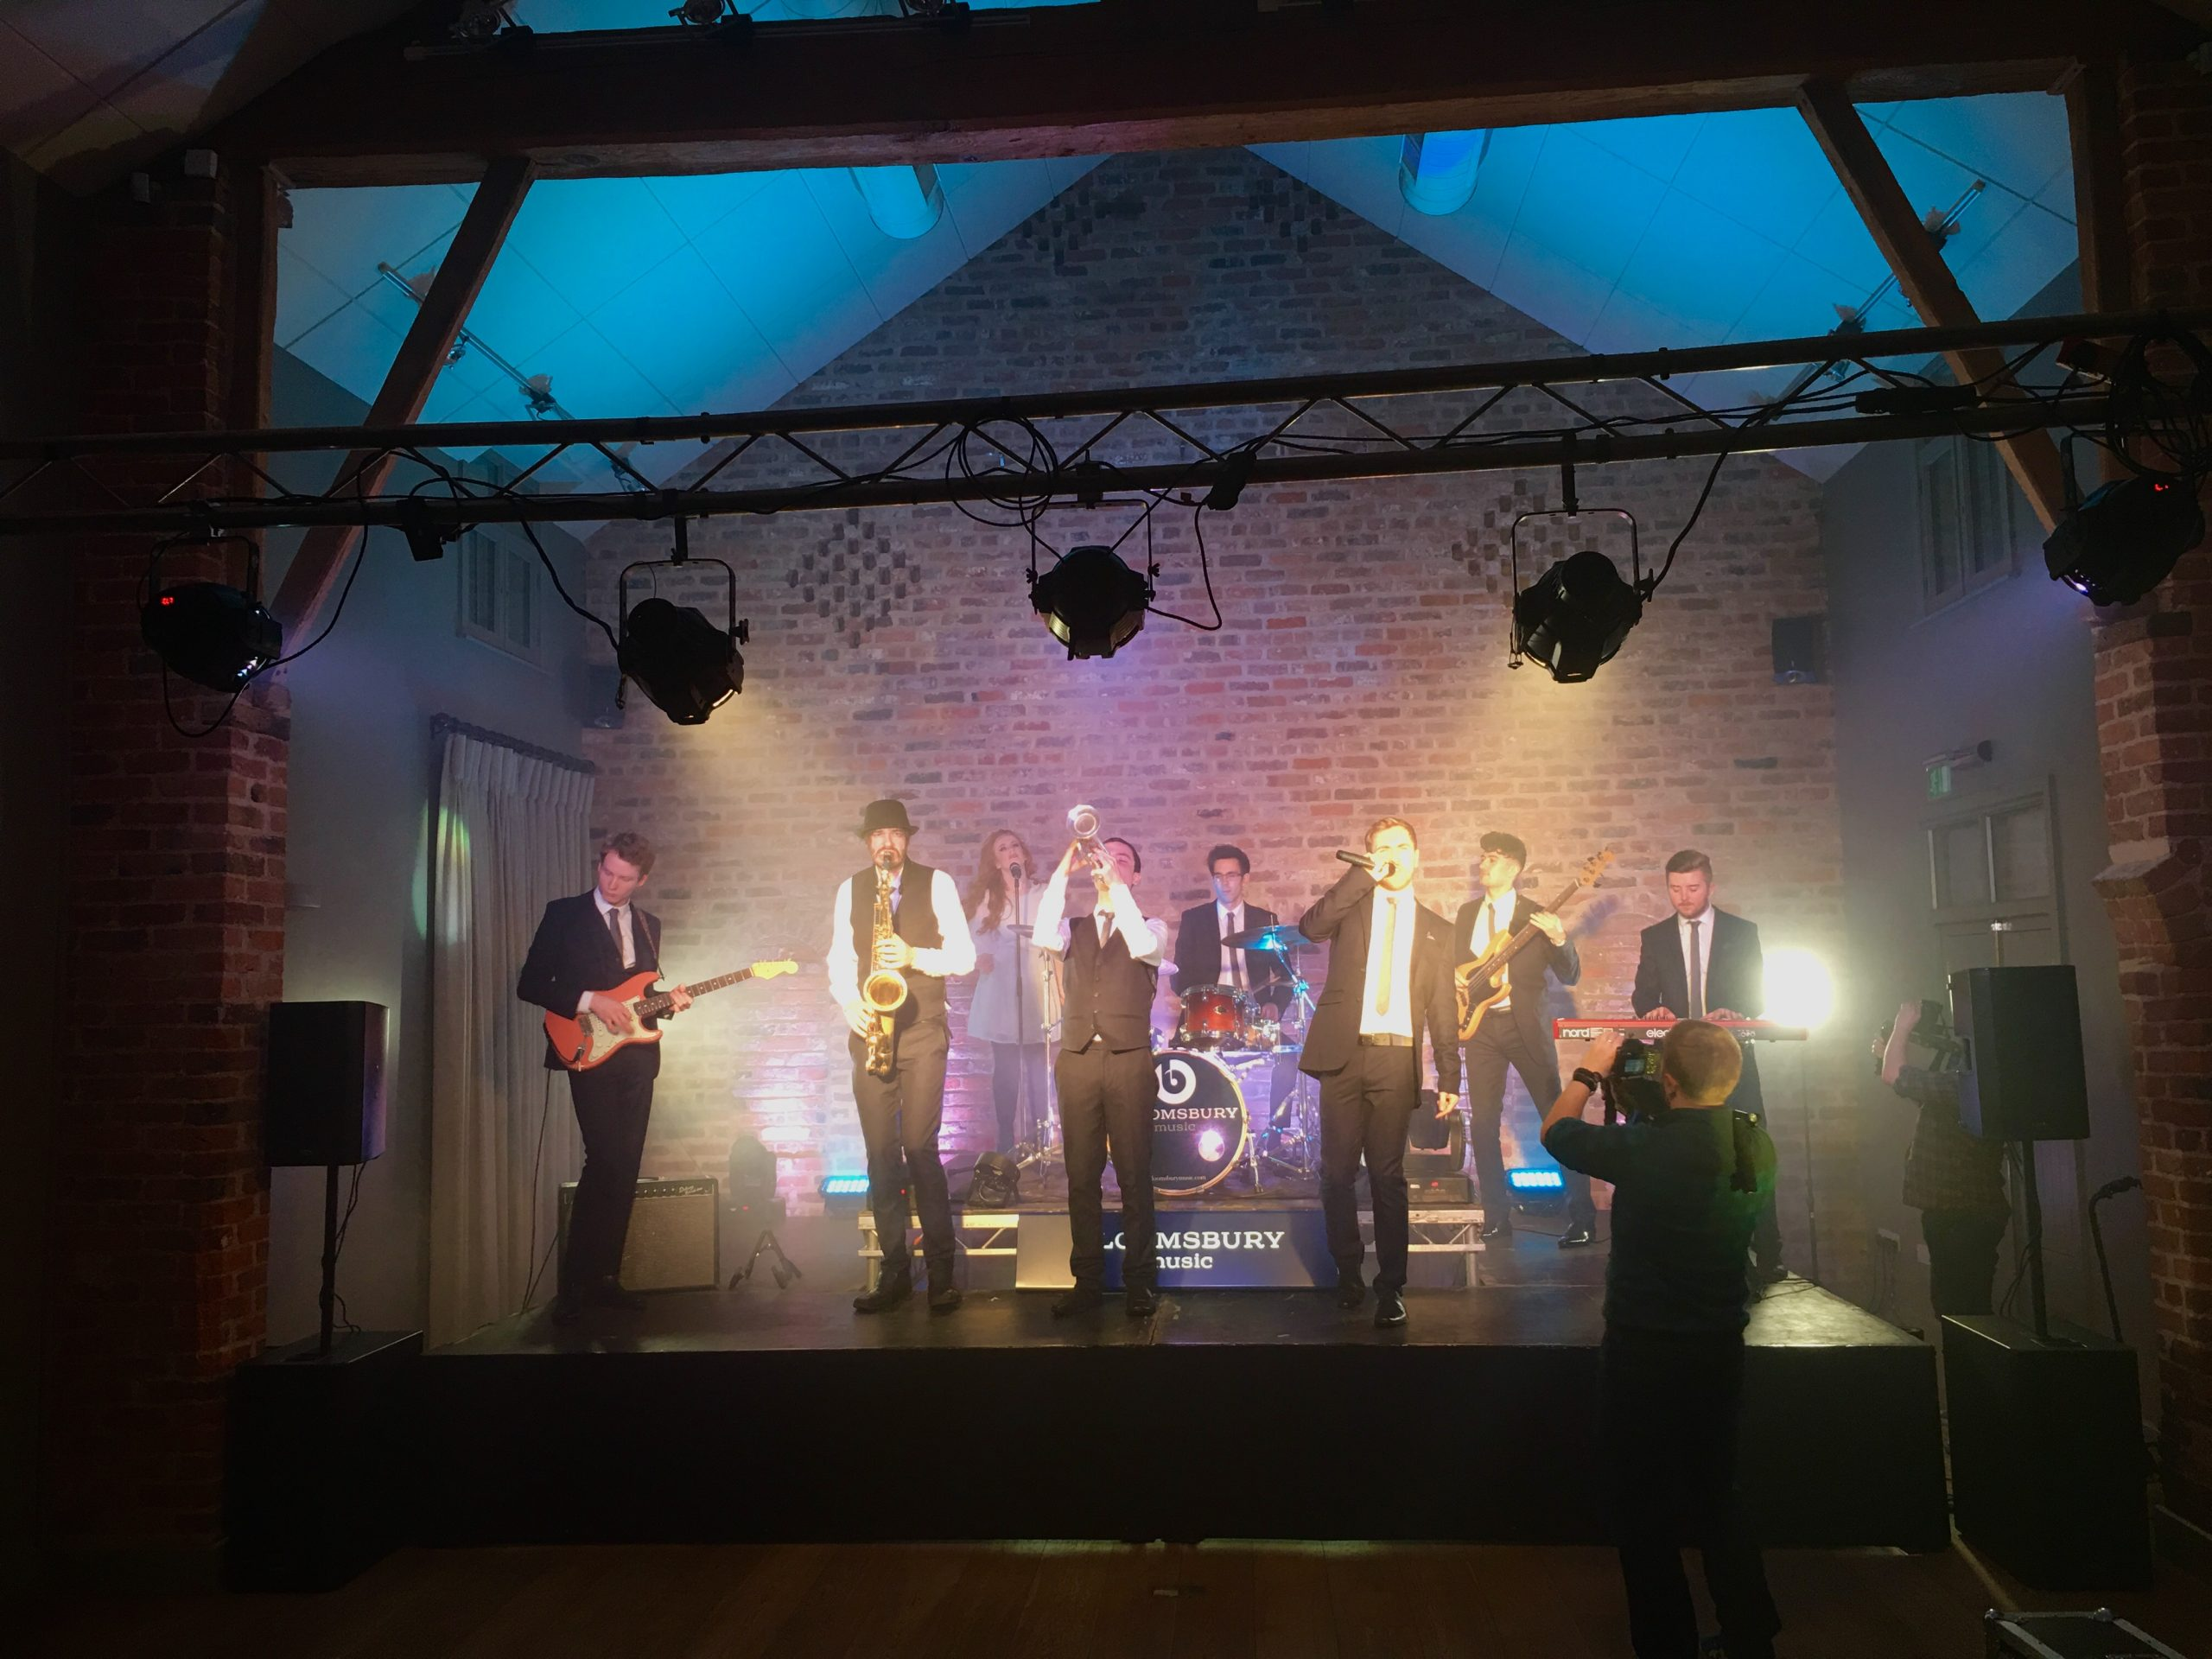 Arley Hall Wedding Venue – Cheshire Wedding Band & Wedding Entertainment Preferred Suppliers